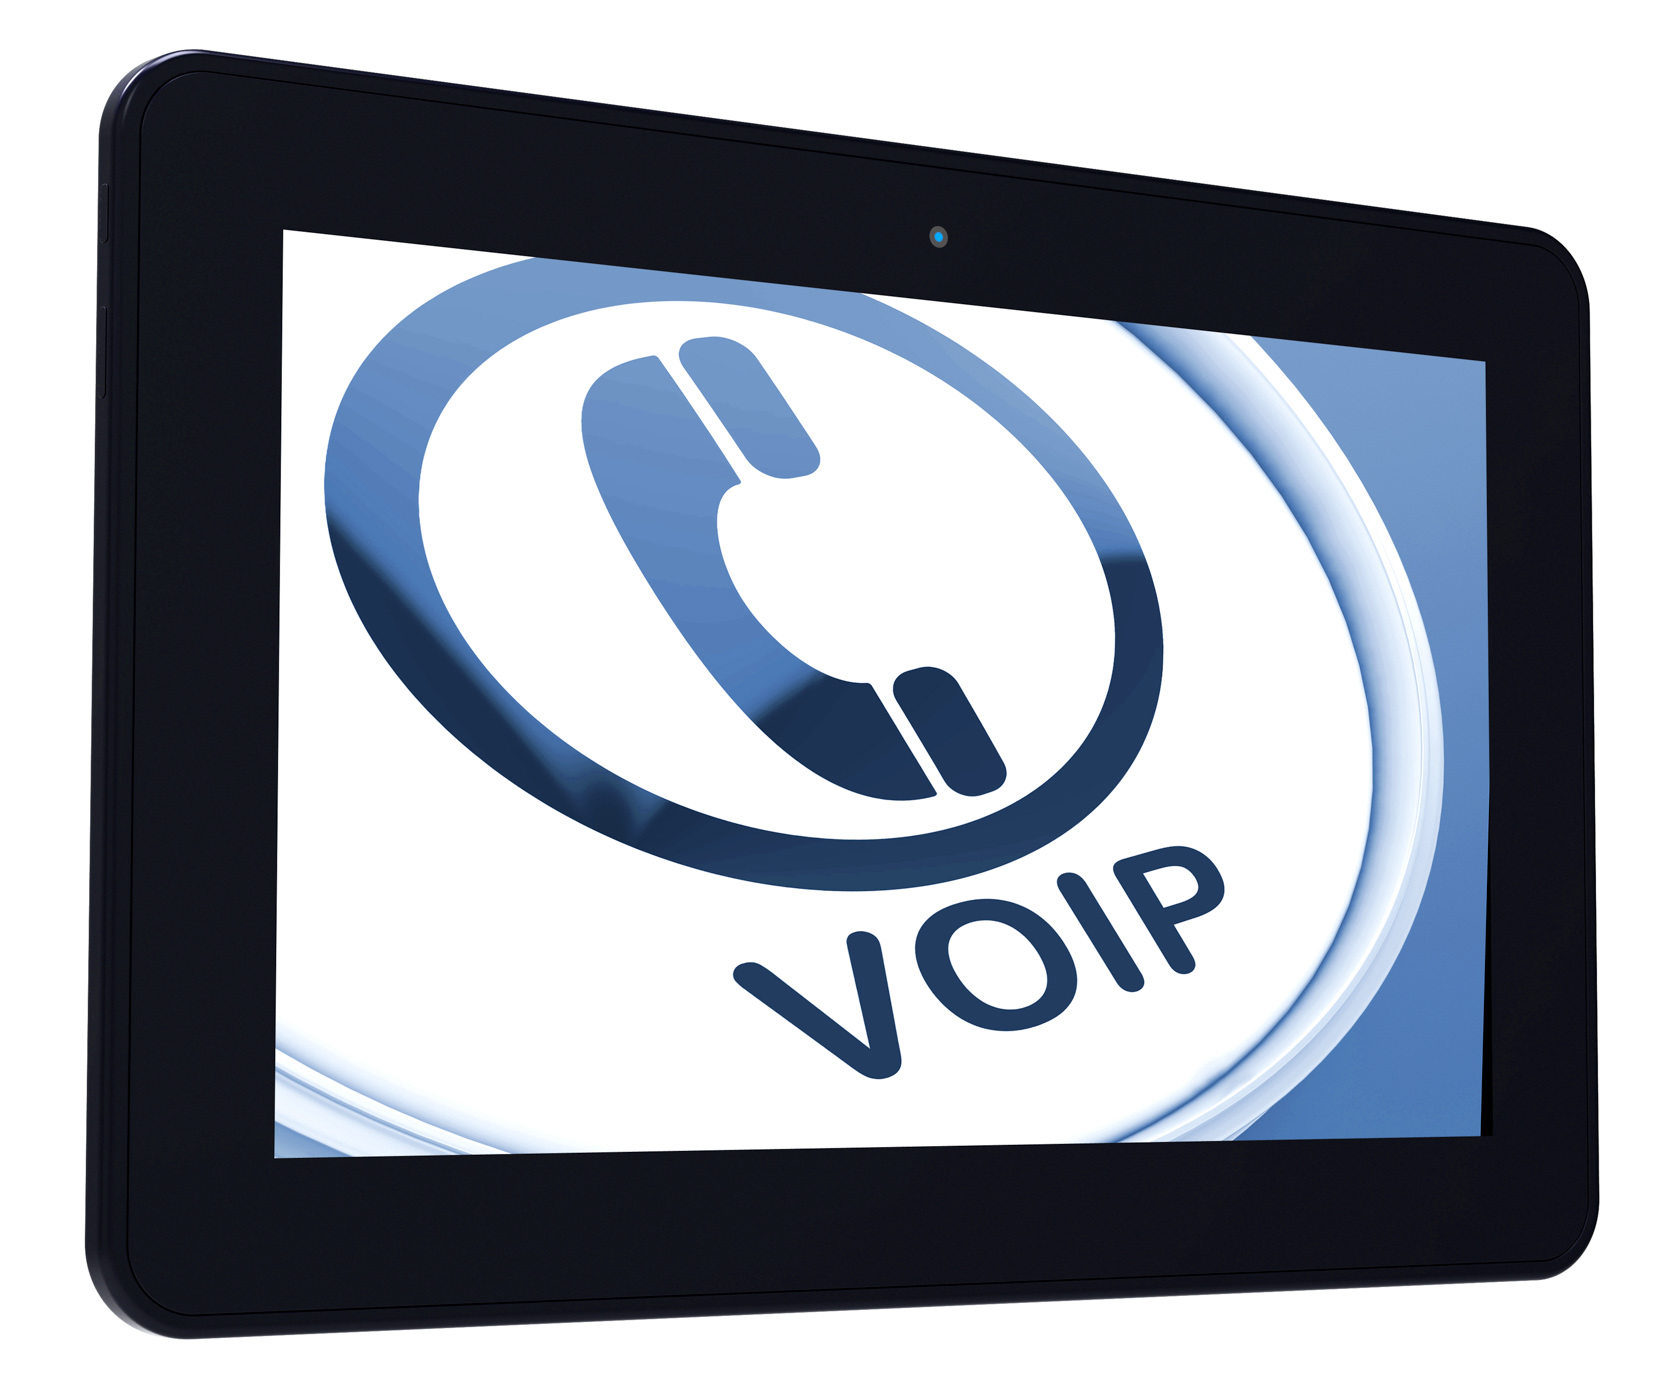 Voip tablet means voice over internet protocol or broadband telephony photo